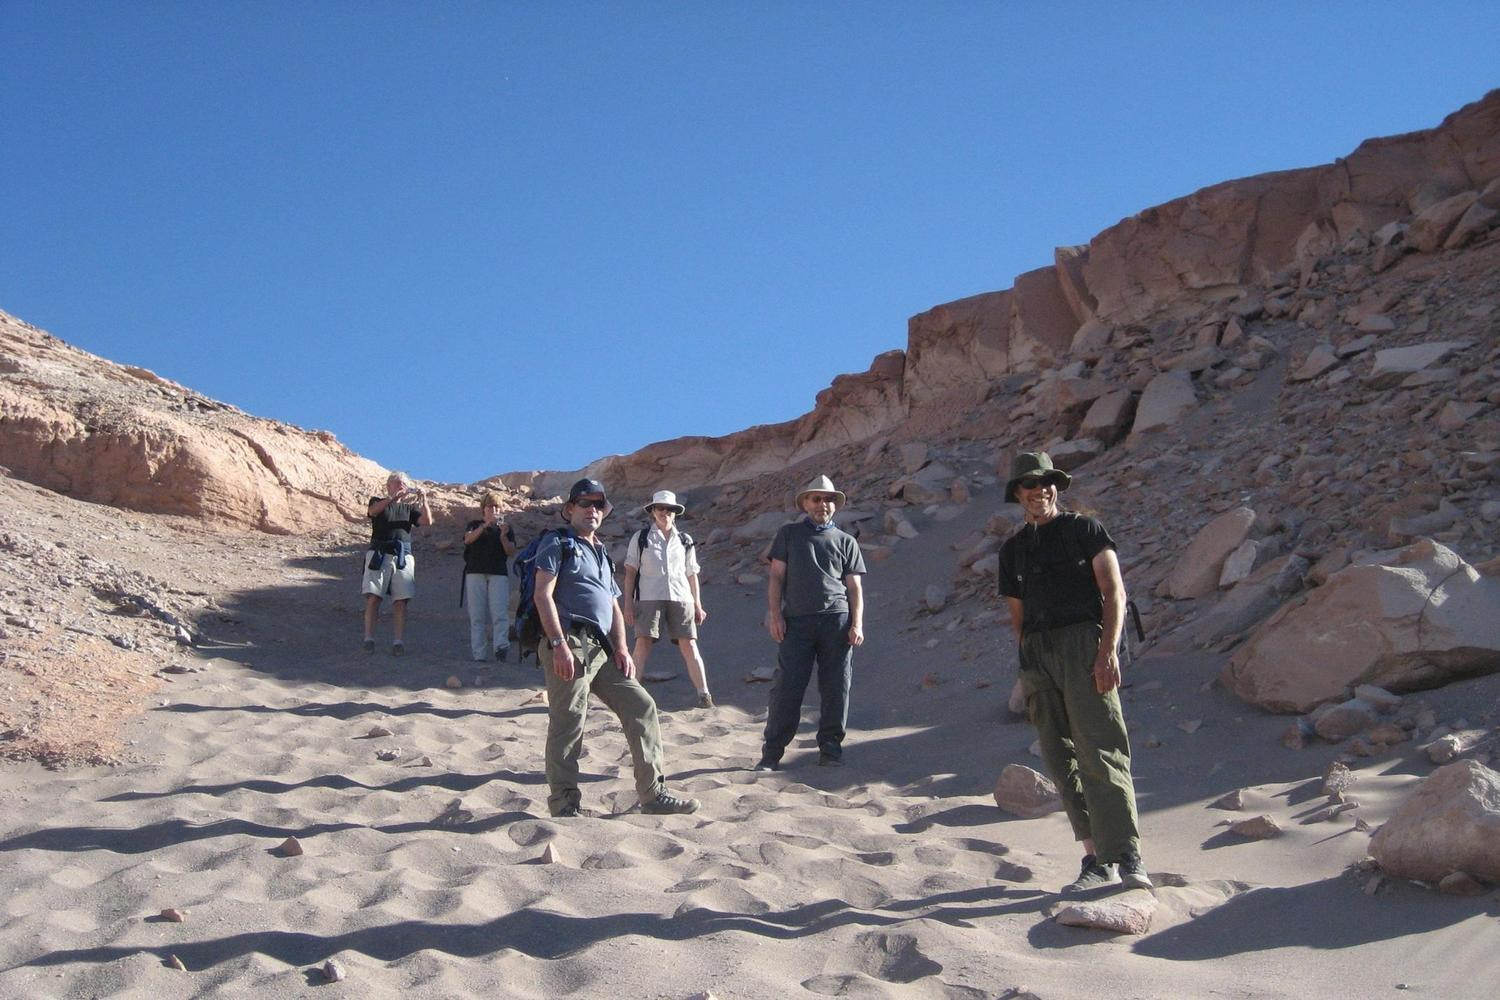 Setting off to hike into the little visited Salt Mountains near San Pedro de Atacama